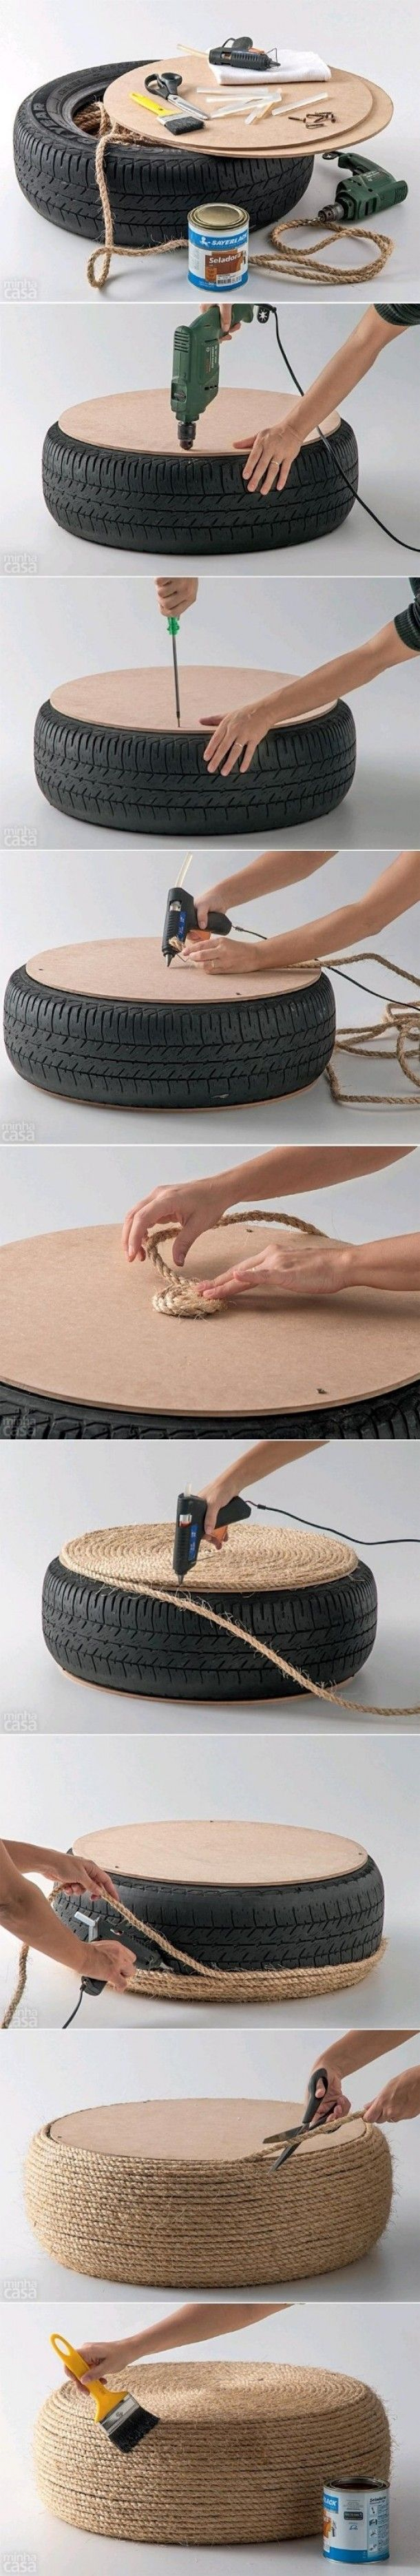 Awesome upcycling idea if you have a spare tire around! Well, a spare spare tire anyway :)